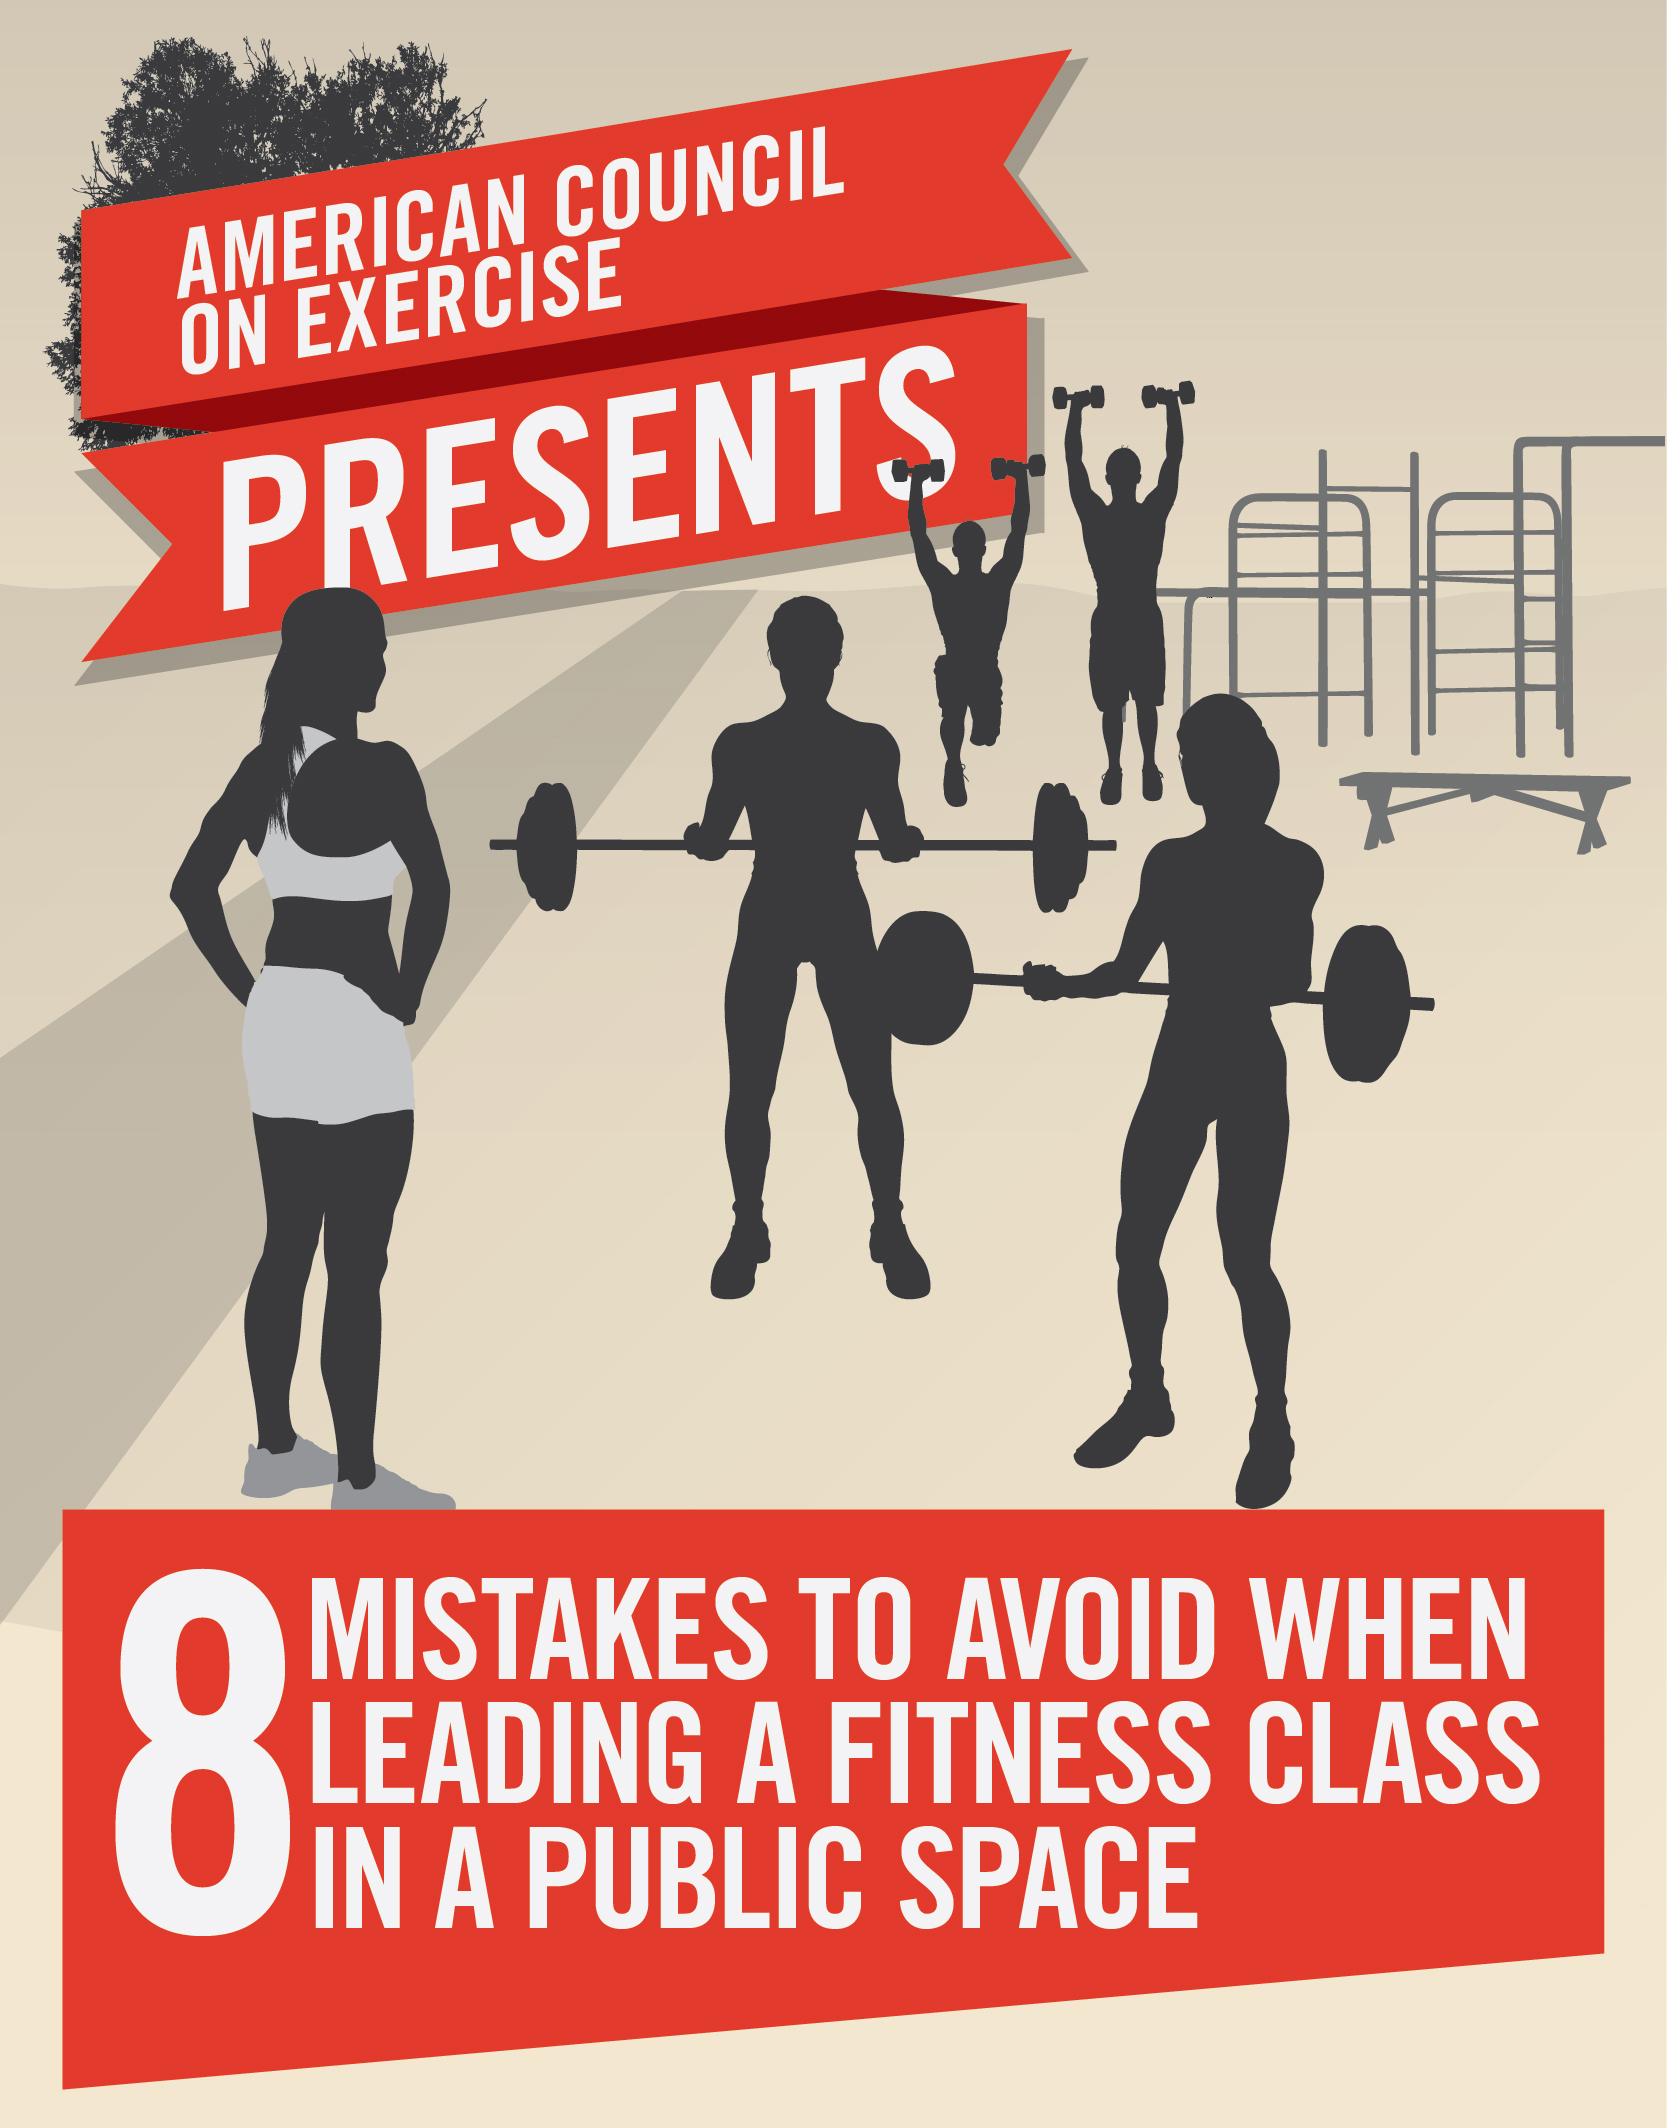 8 Mistakes to Avoid When Leading a Fitness Class in a Public Space